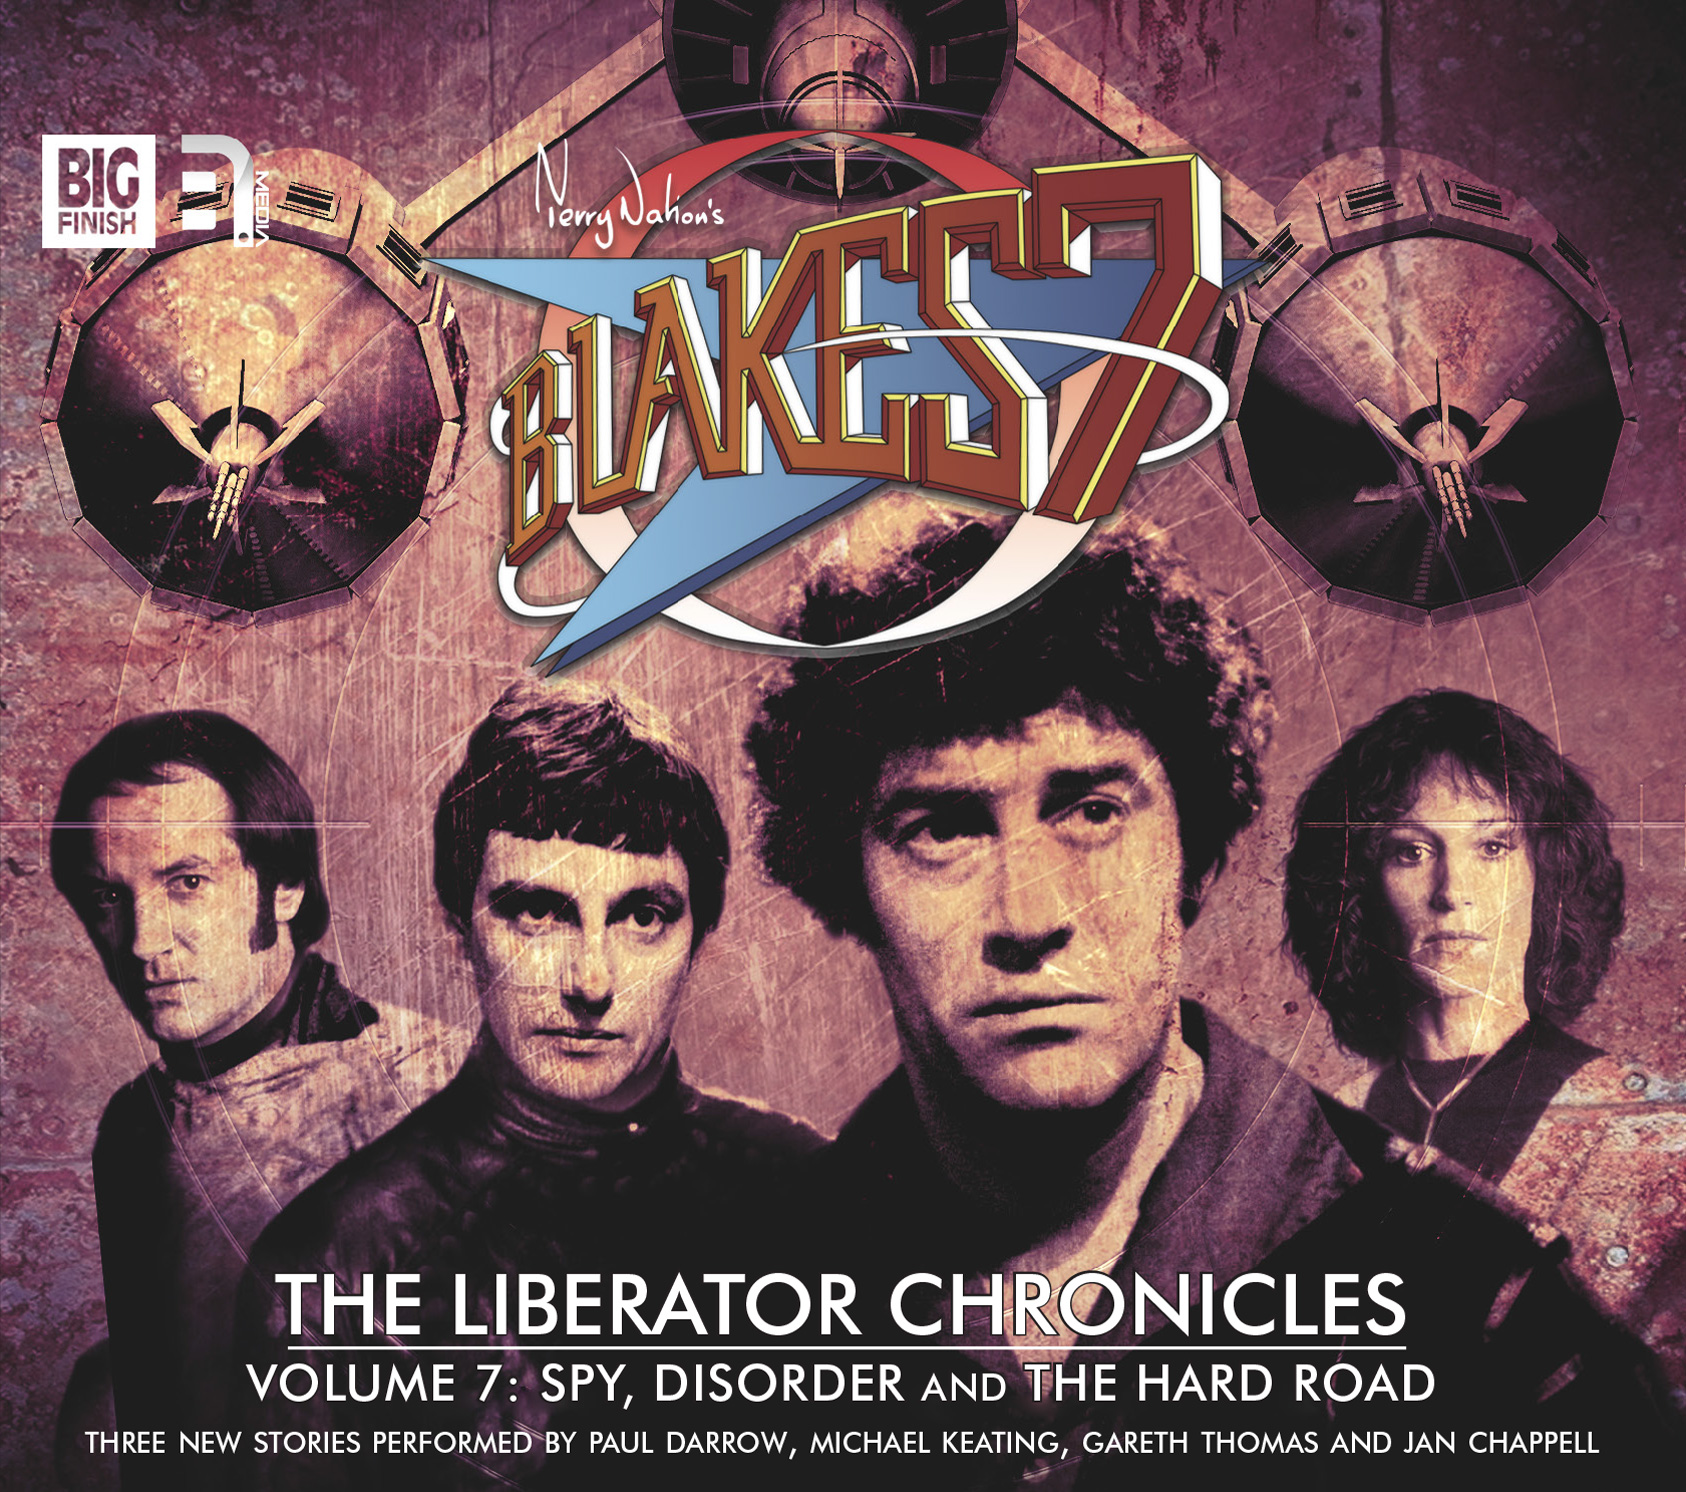 THE LIBERATOR CHRONICLES: VOL 7